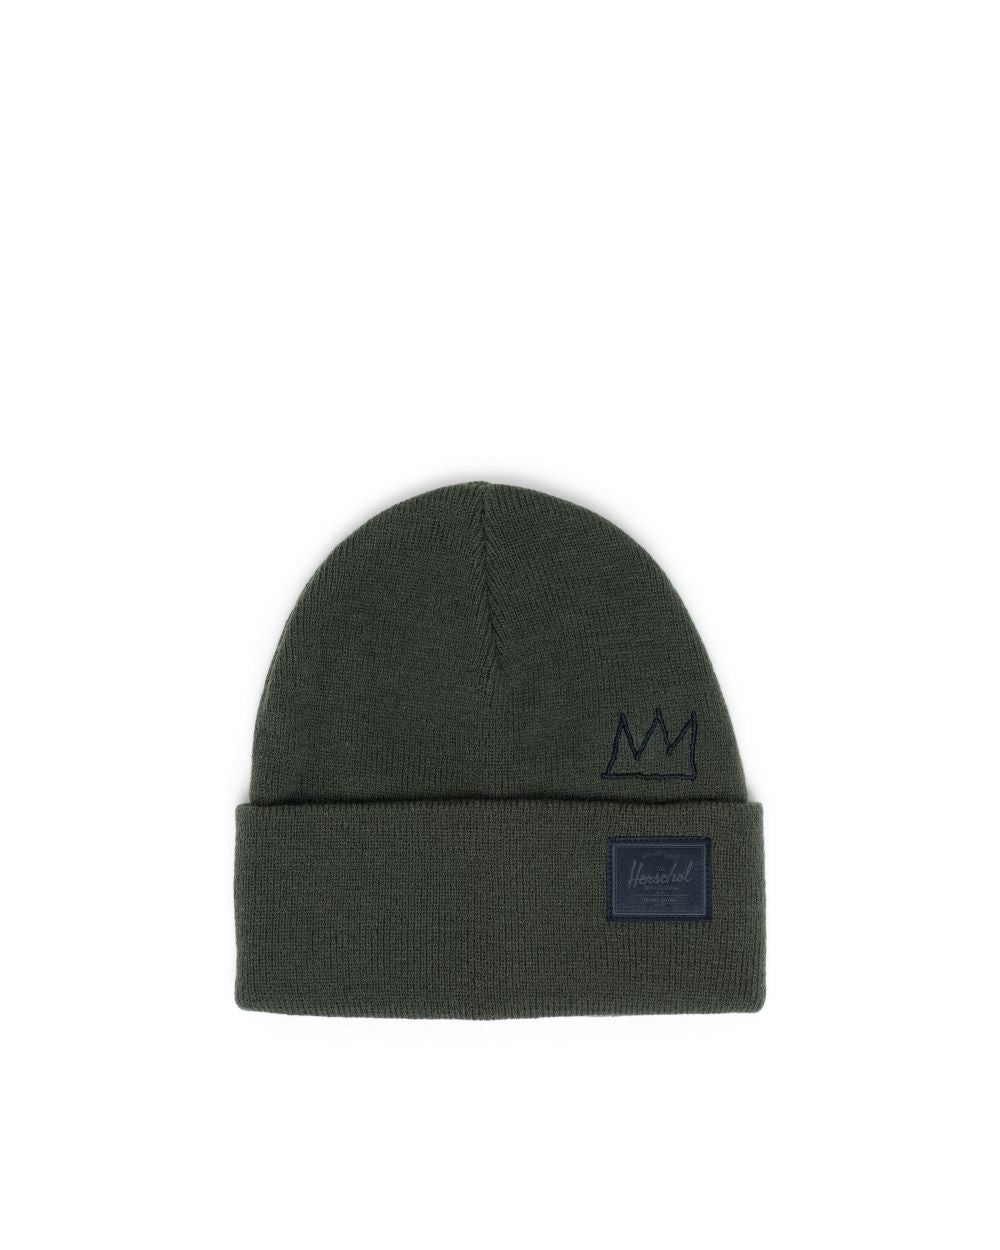 Herschel Supply Co. x Basquiat - Elmer Beanie, Dark Olive